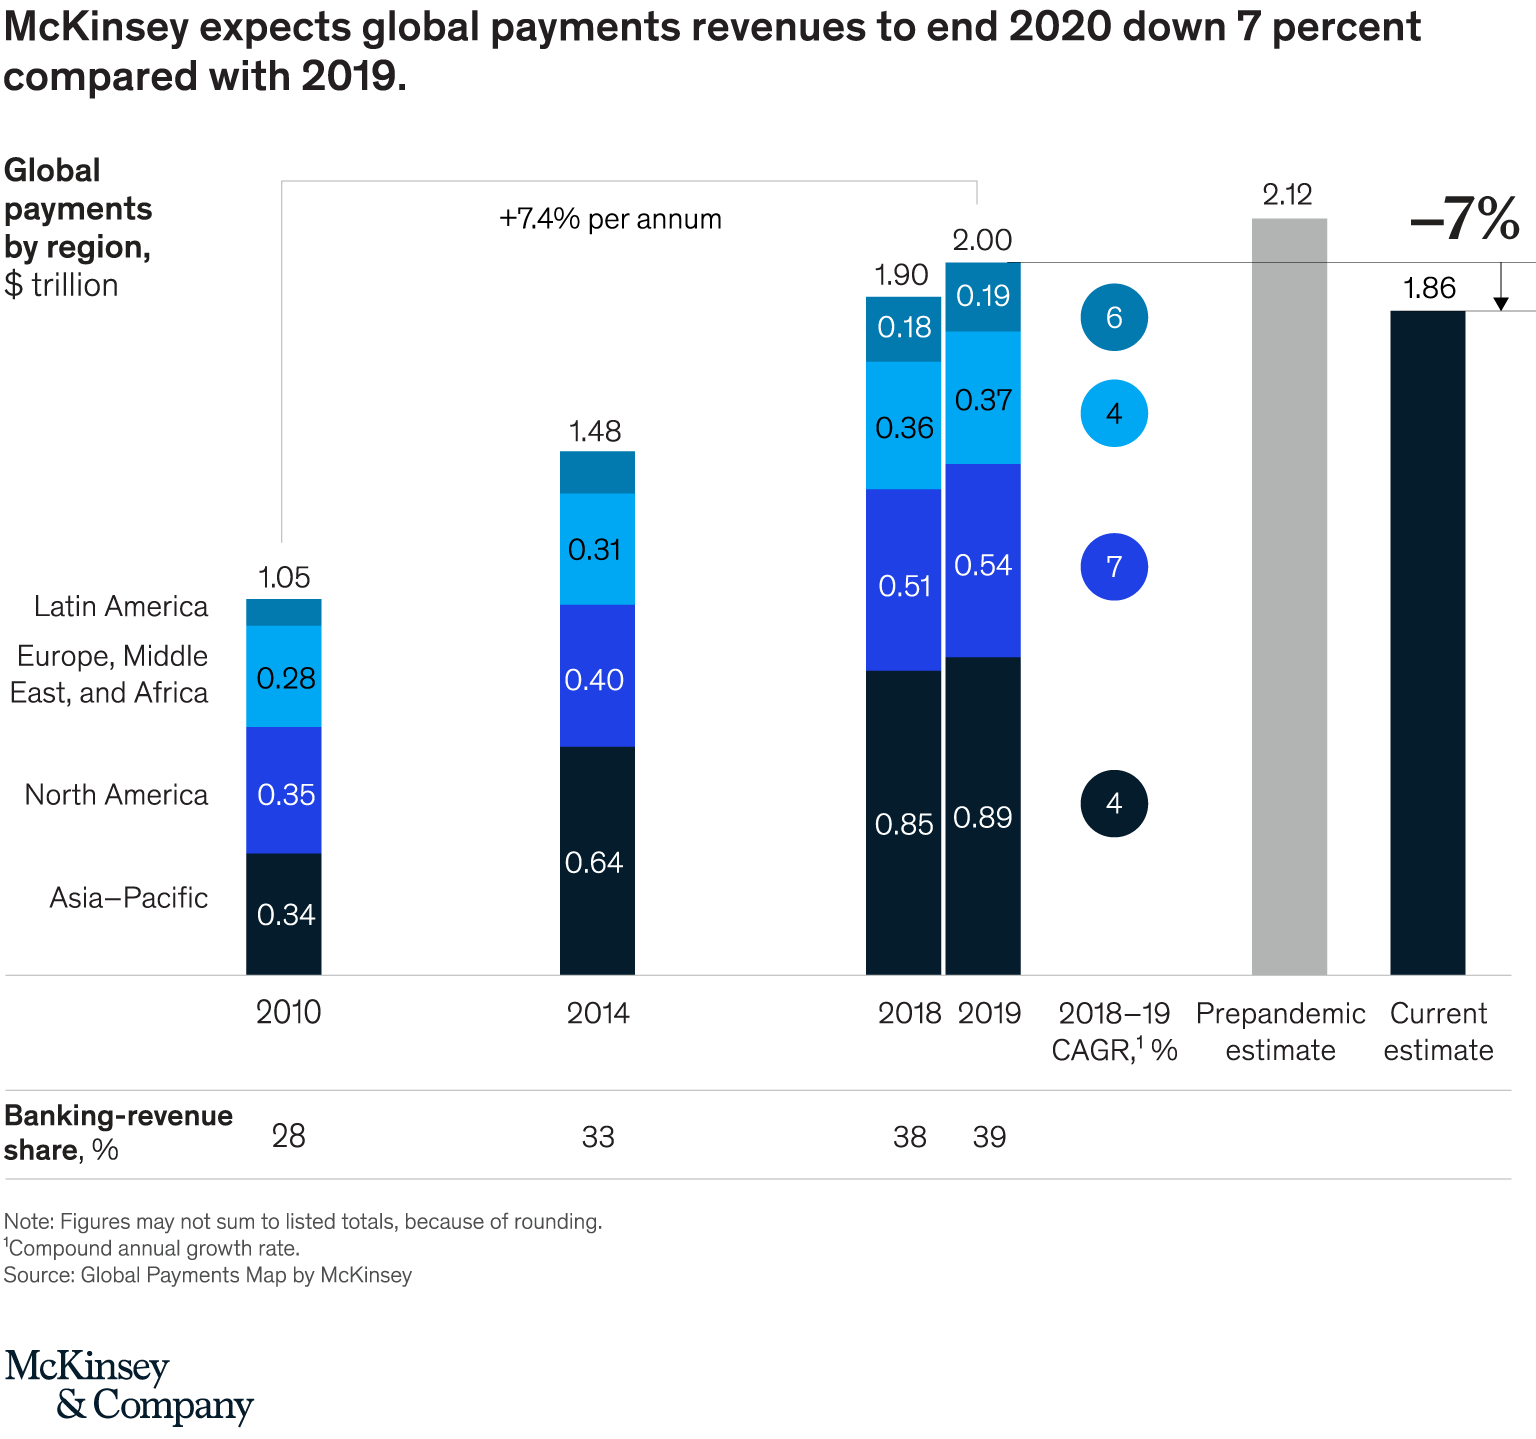 Image- Global payments revenues growth, Source- Global Payments Map by McKinsey